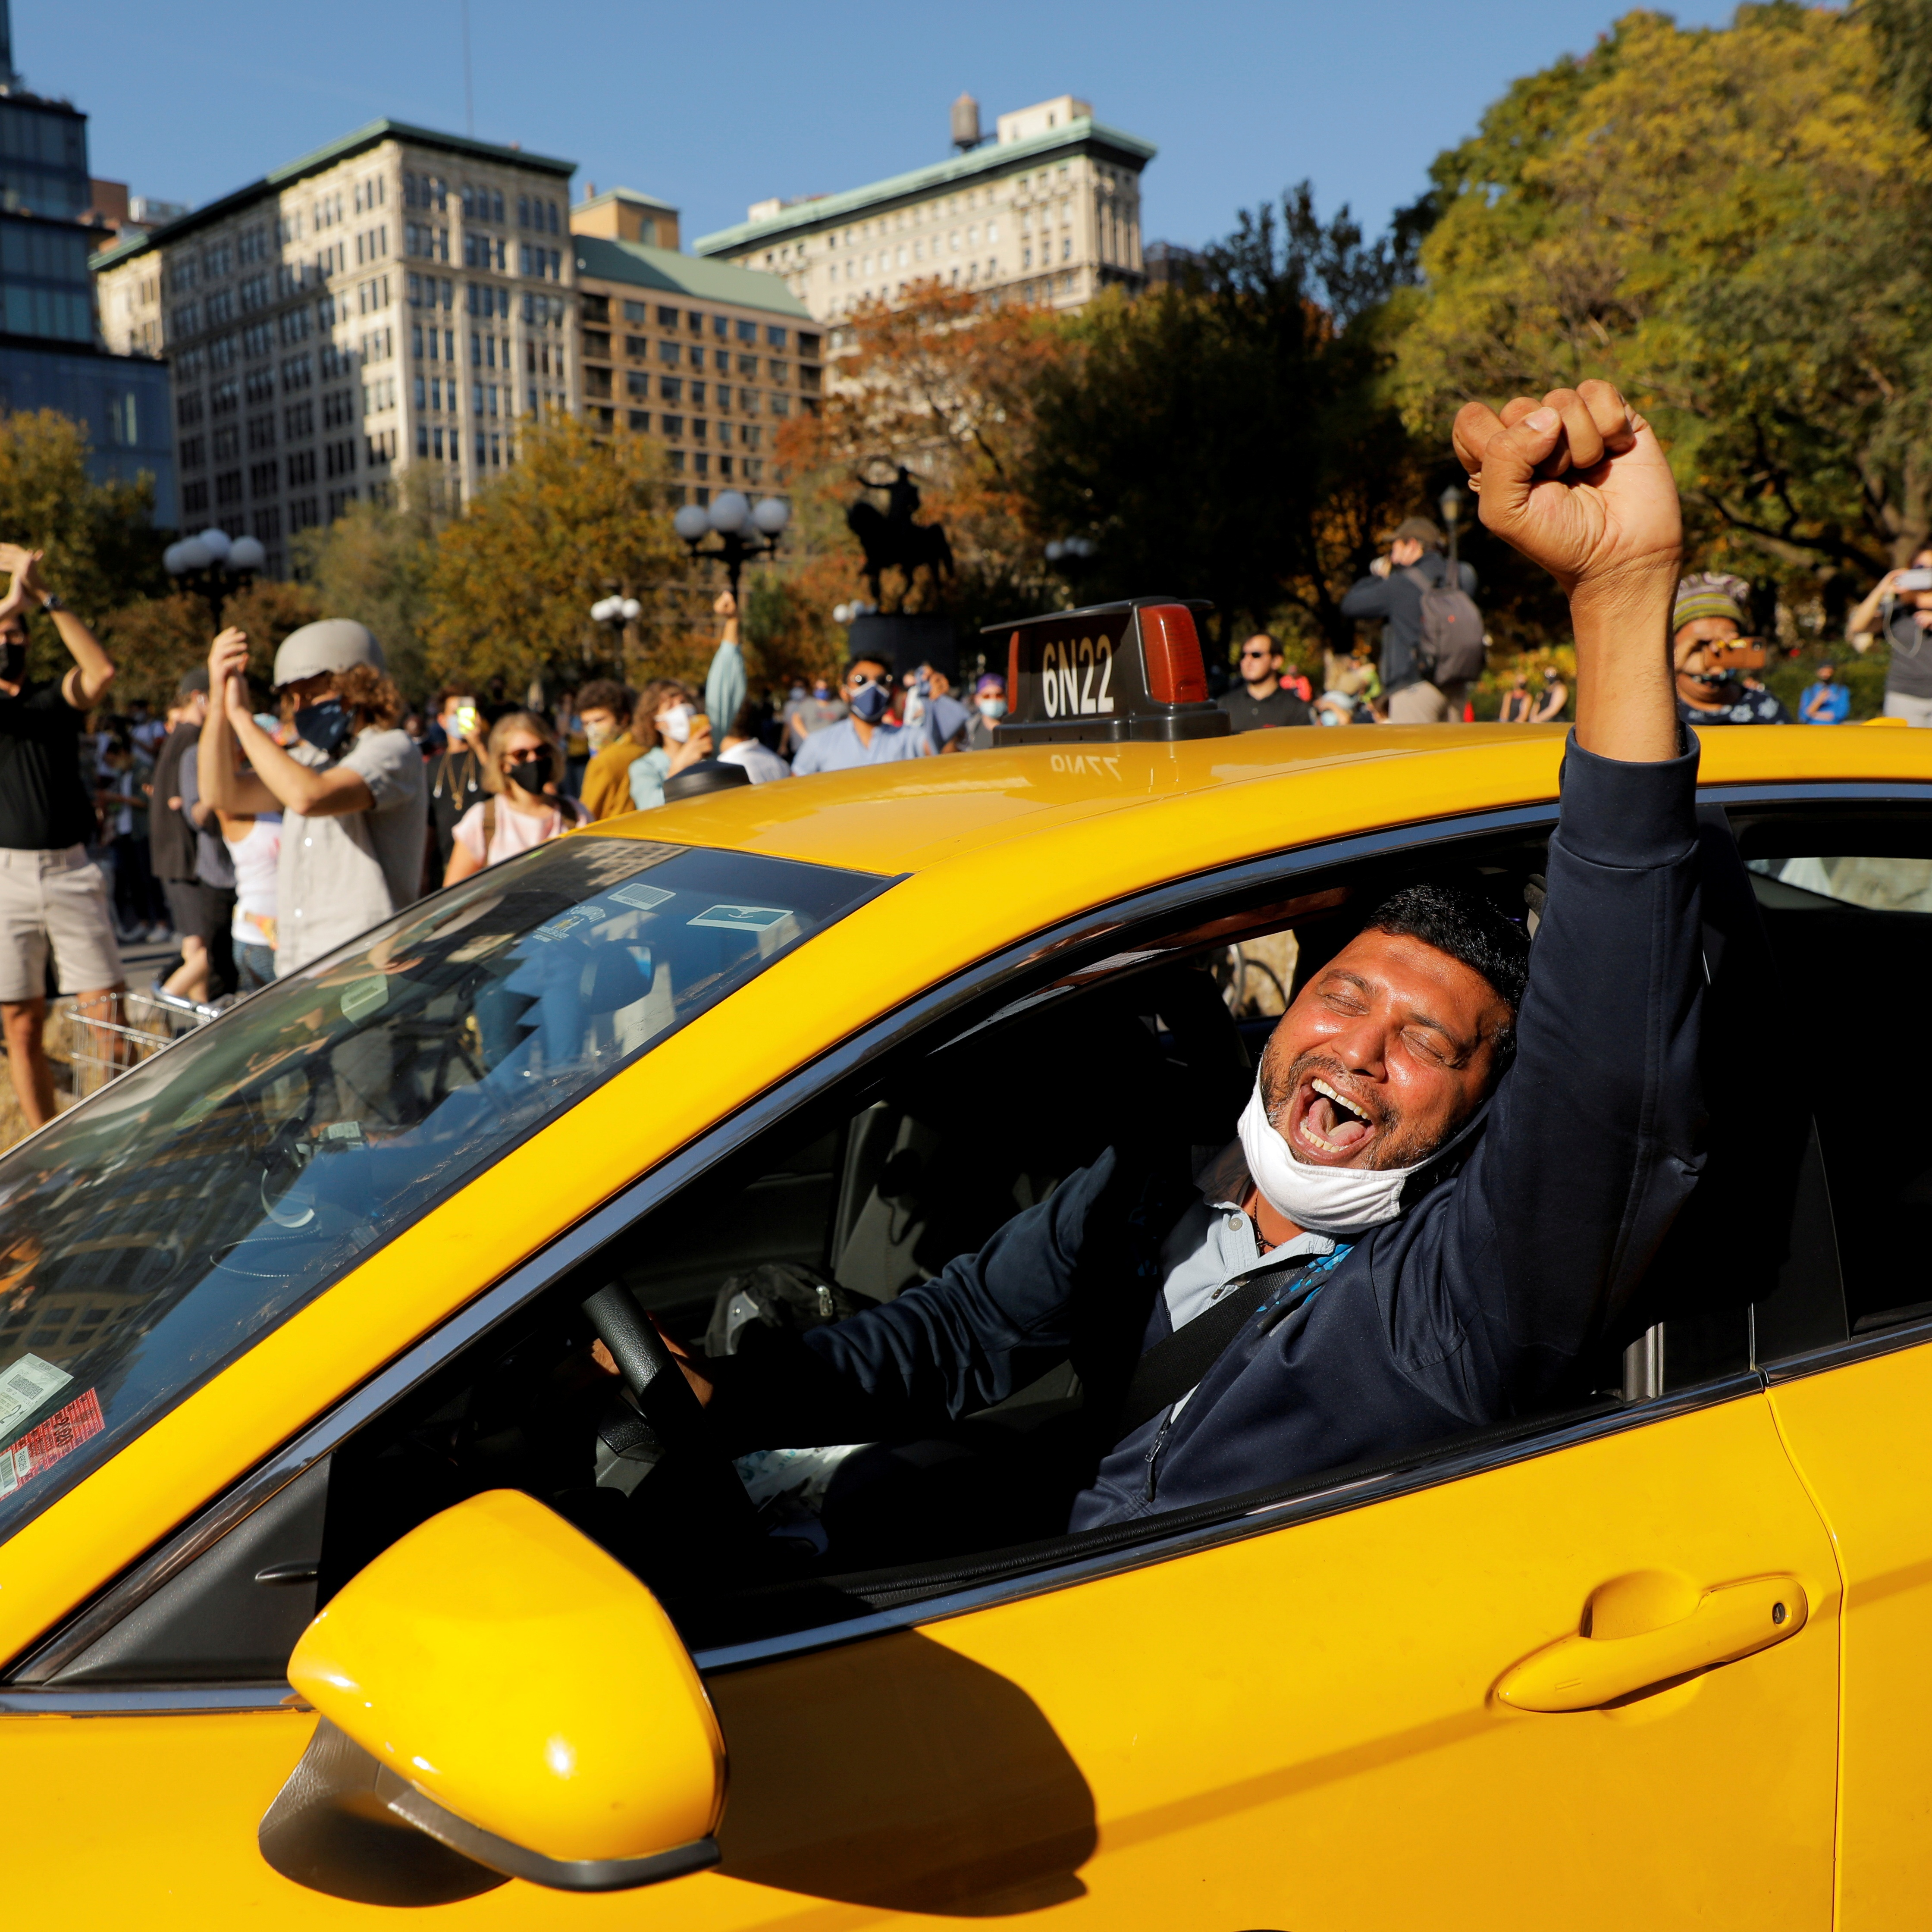 A cab driver raises his fist as people celebrate media announcements that Democratic U.S. presidential nominee Joe Biden has won the 2020 U.S. presidential election on Union Square in the Manhattan borough of New York City, U.S.